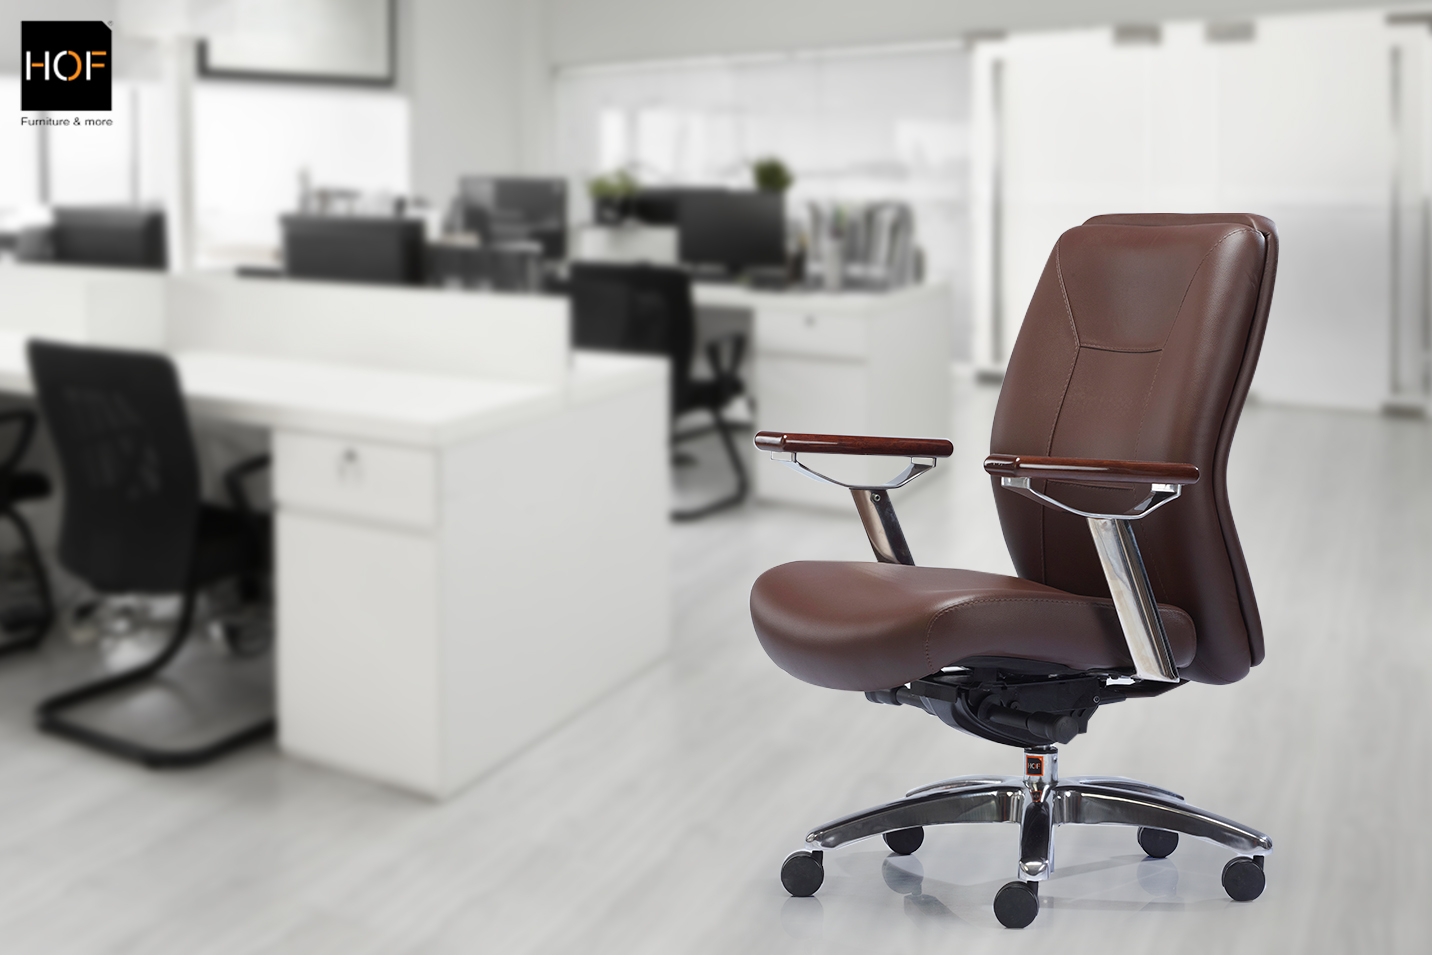 Ergonomic Chairs - Cover